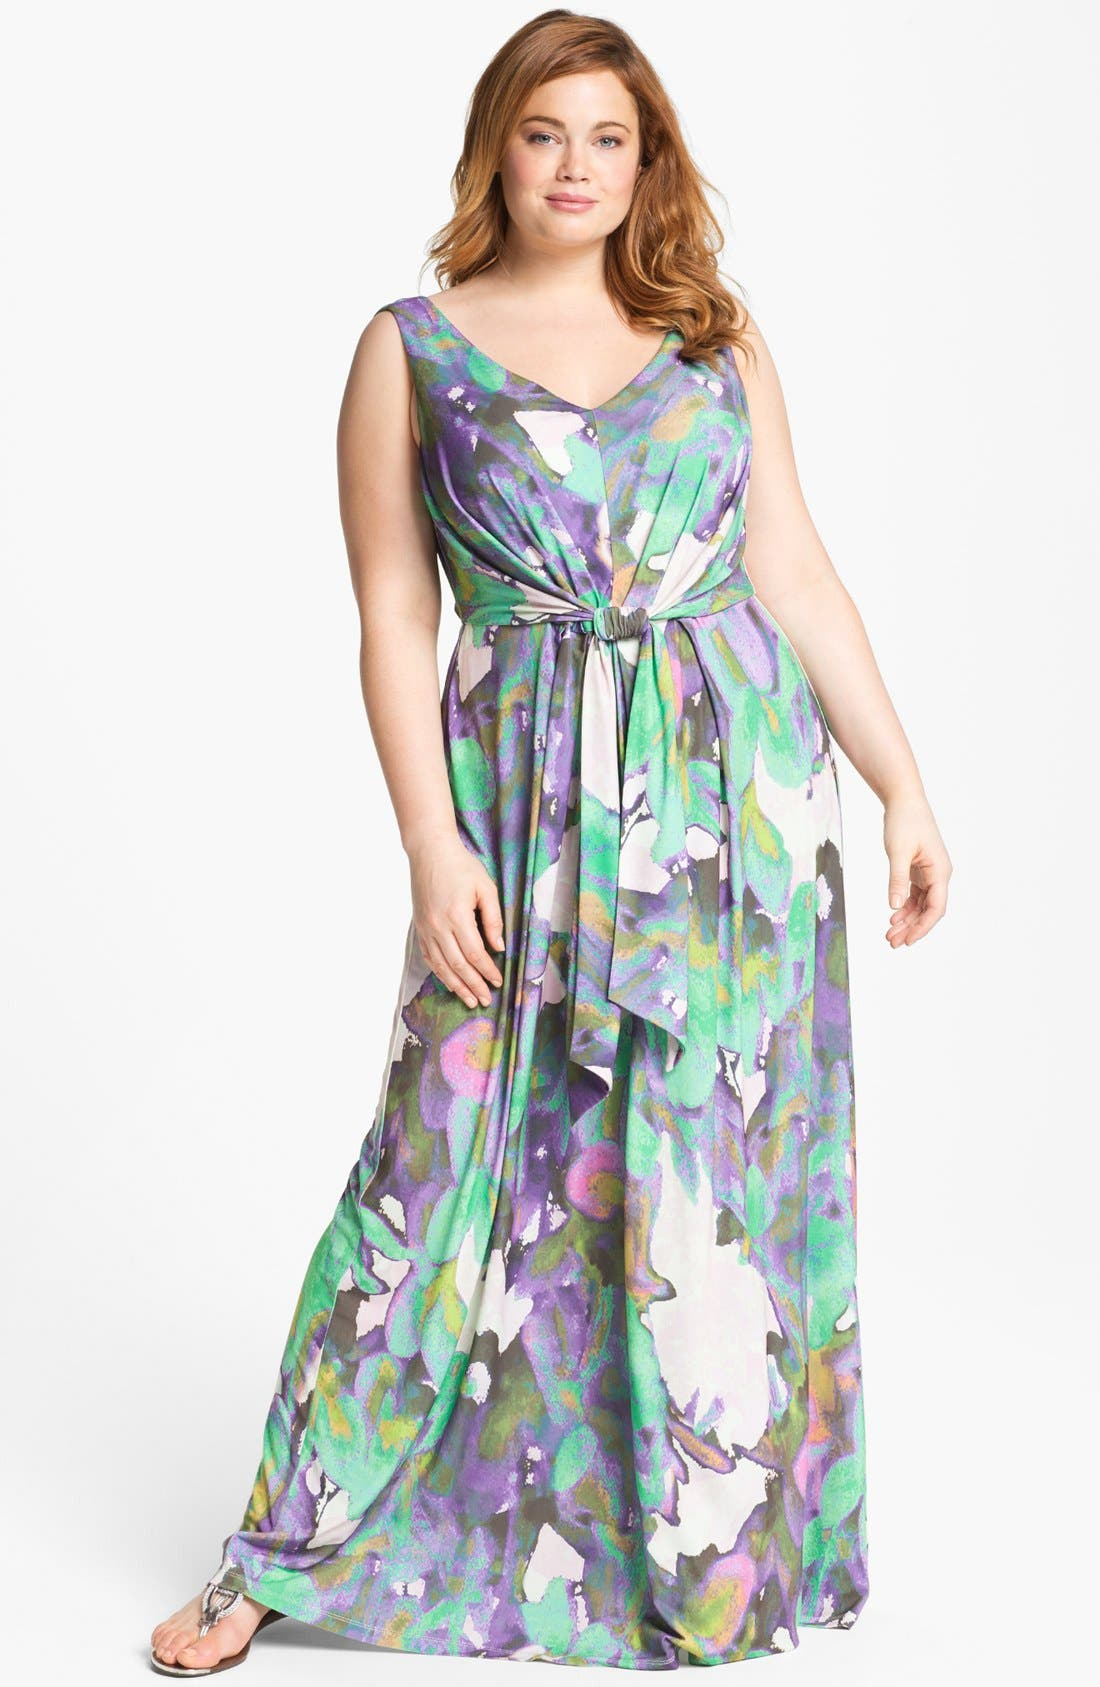 Main Image - Suzi Chin for Maggy Boutique Sleeveless Print Maxi Dress (Plus Size)